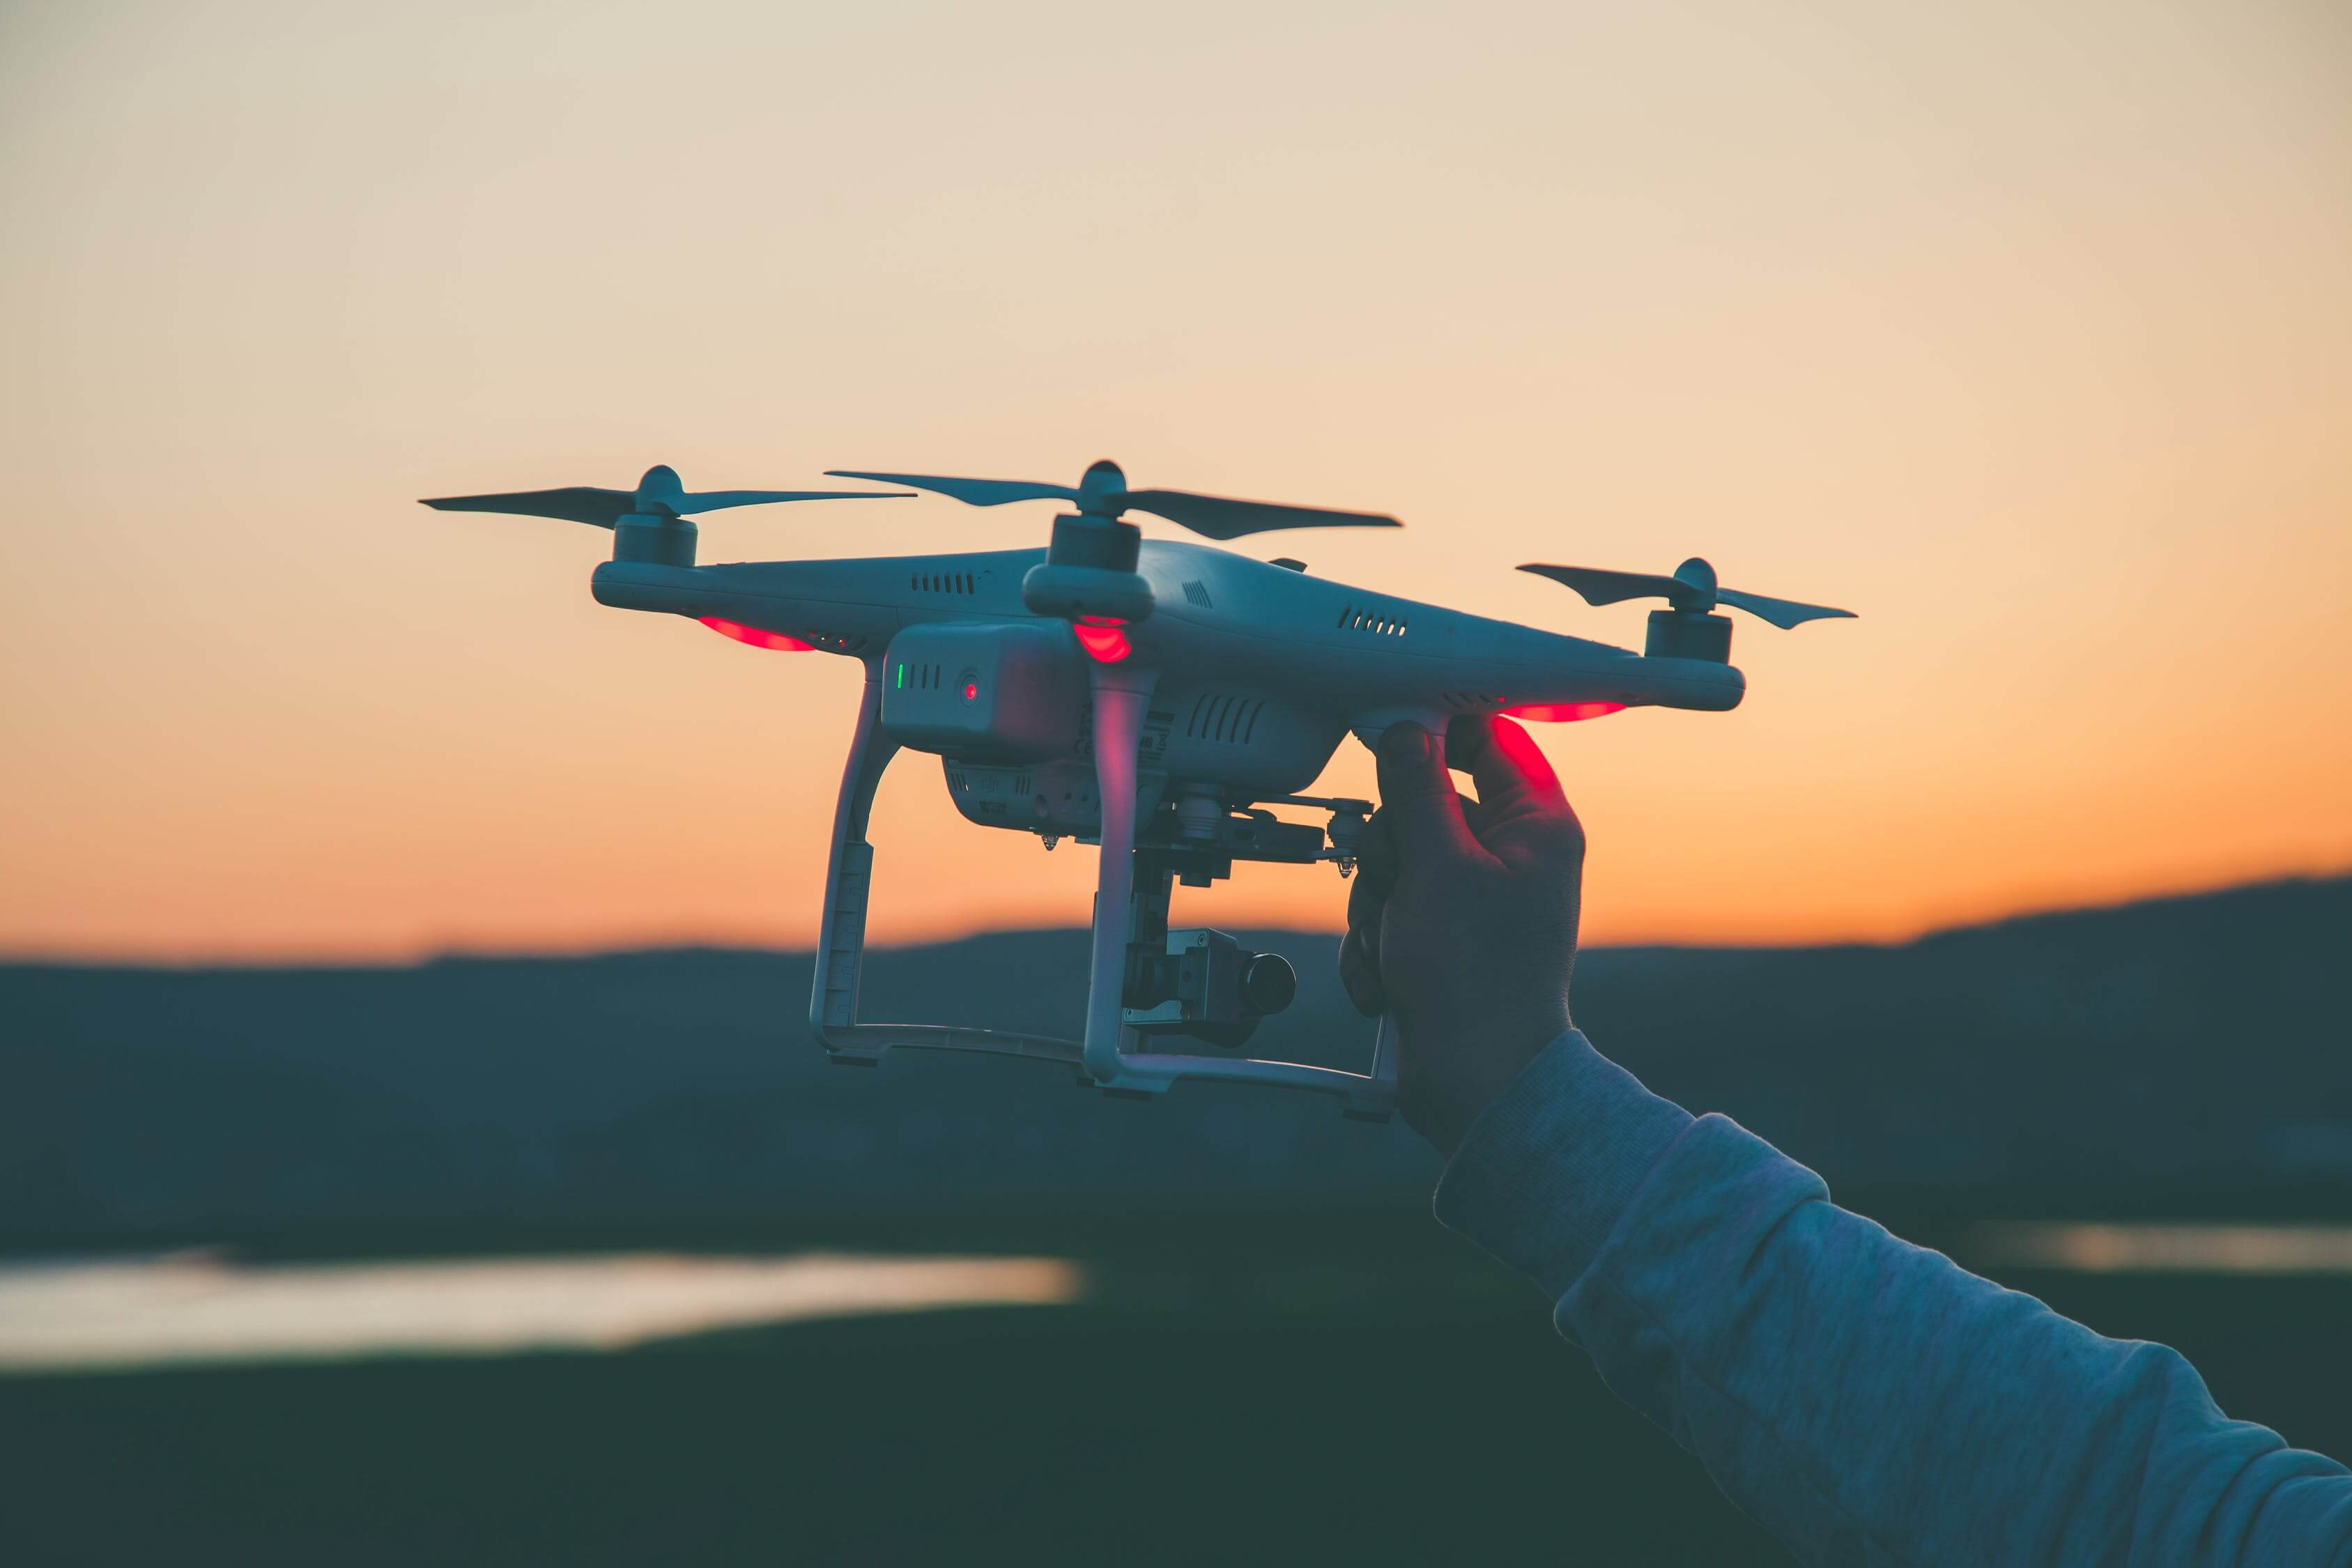 The everpresent drones embraced by millions of hobbyists are making inroads into corporate services.